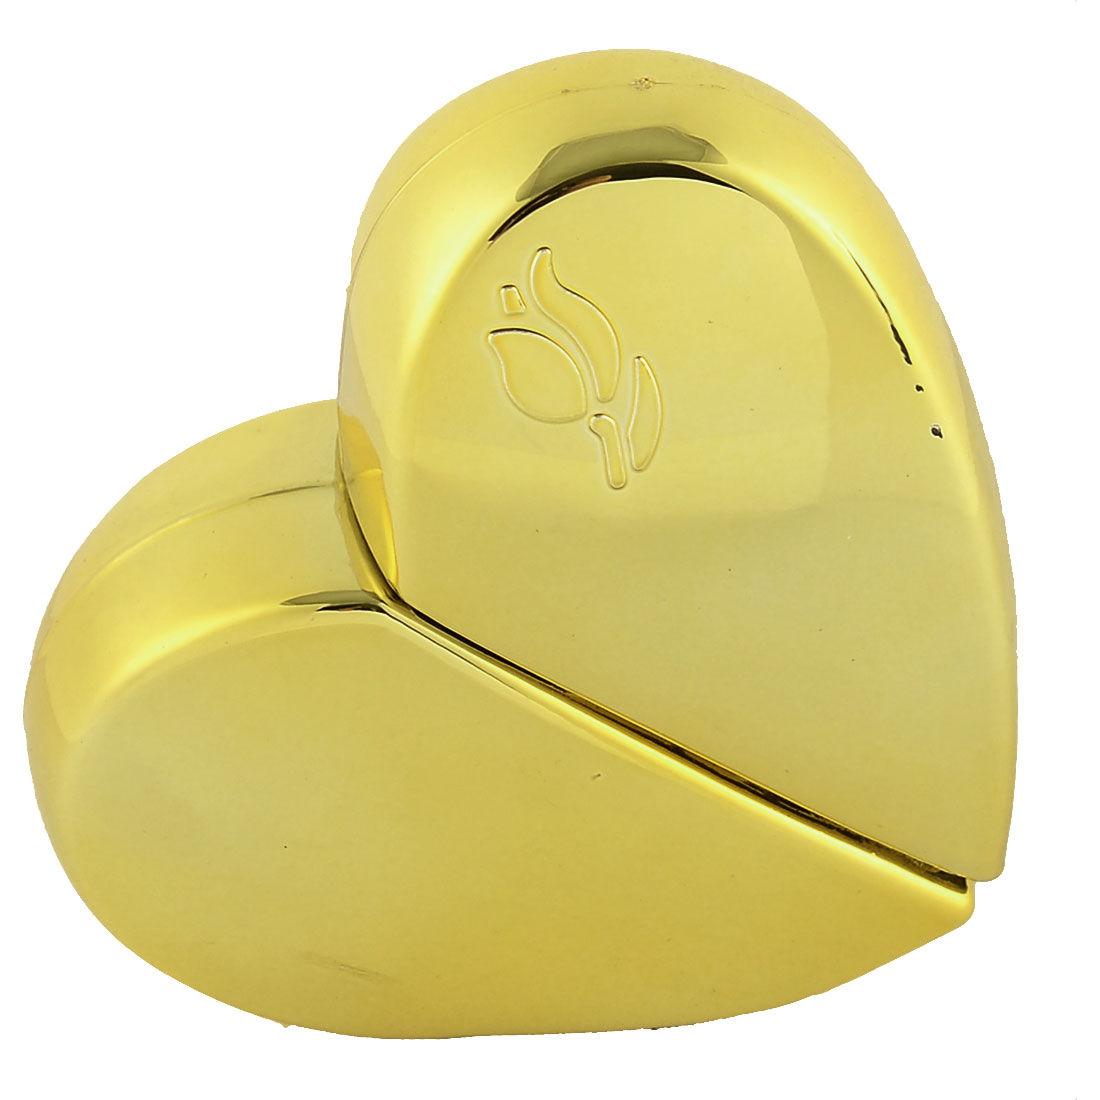 25mL Travel Portable Heart-shaped Water Perfume Spray Bottle Gold Tone